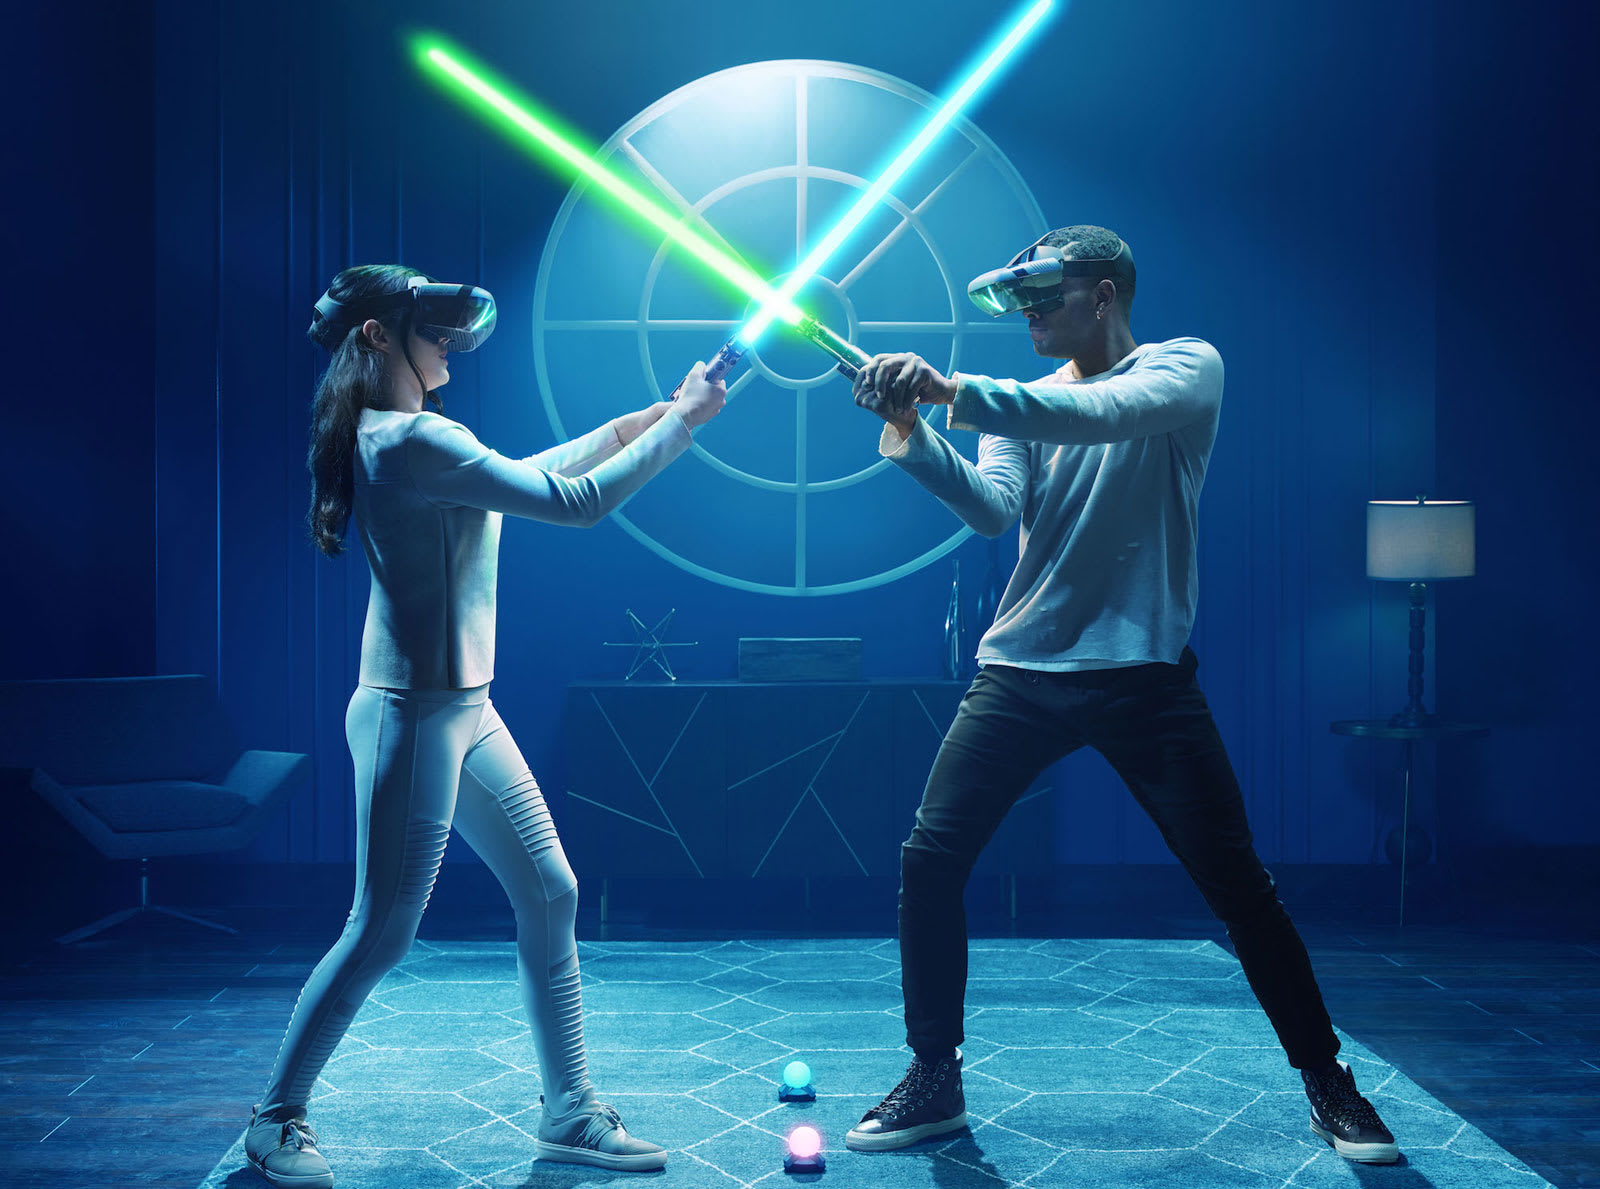 Challenge your friends to lightsaber duels in 'Star Wars